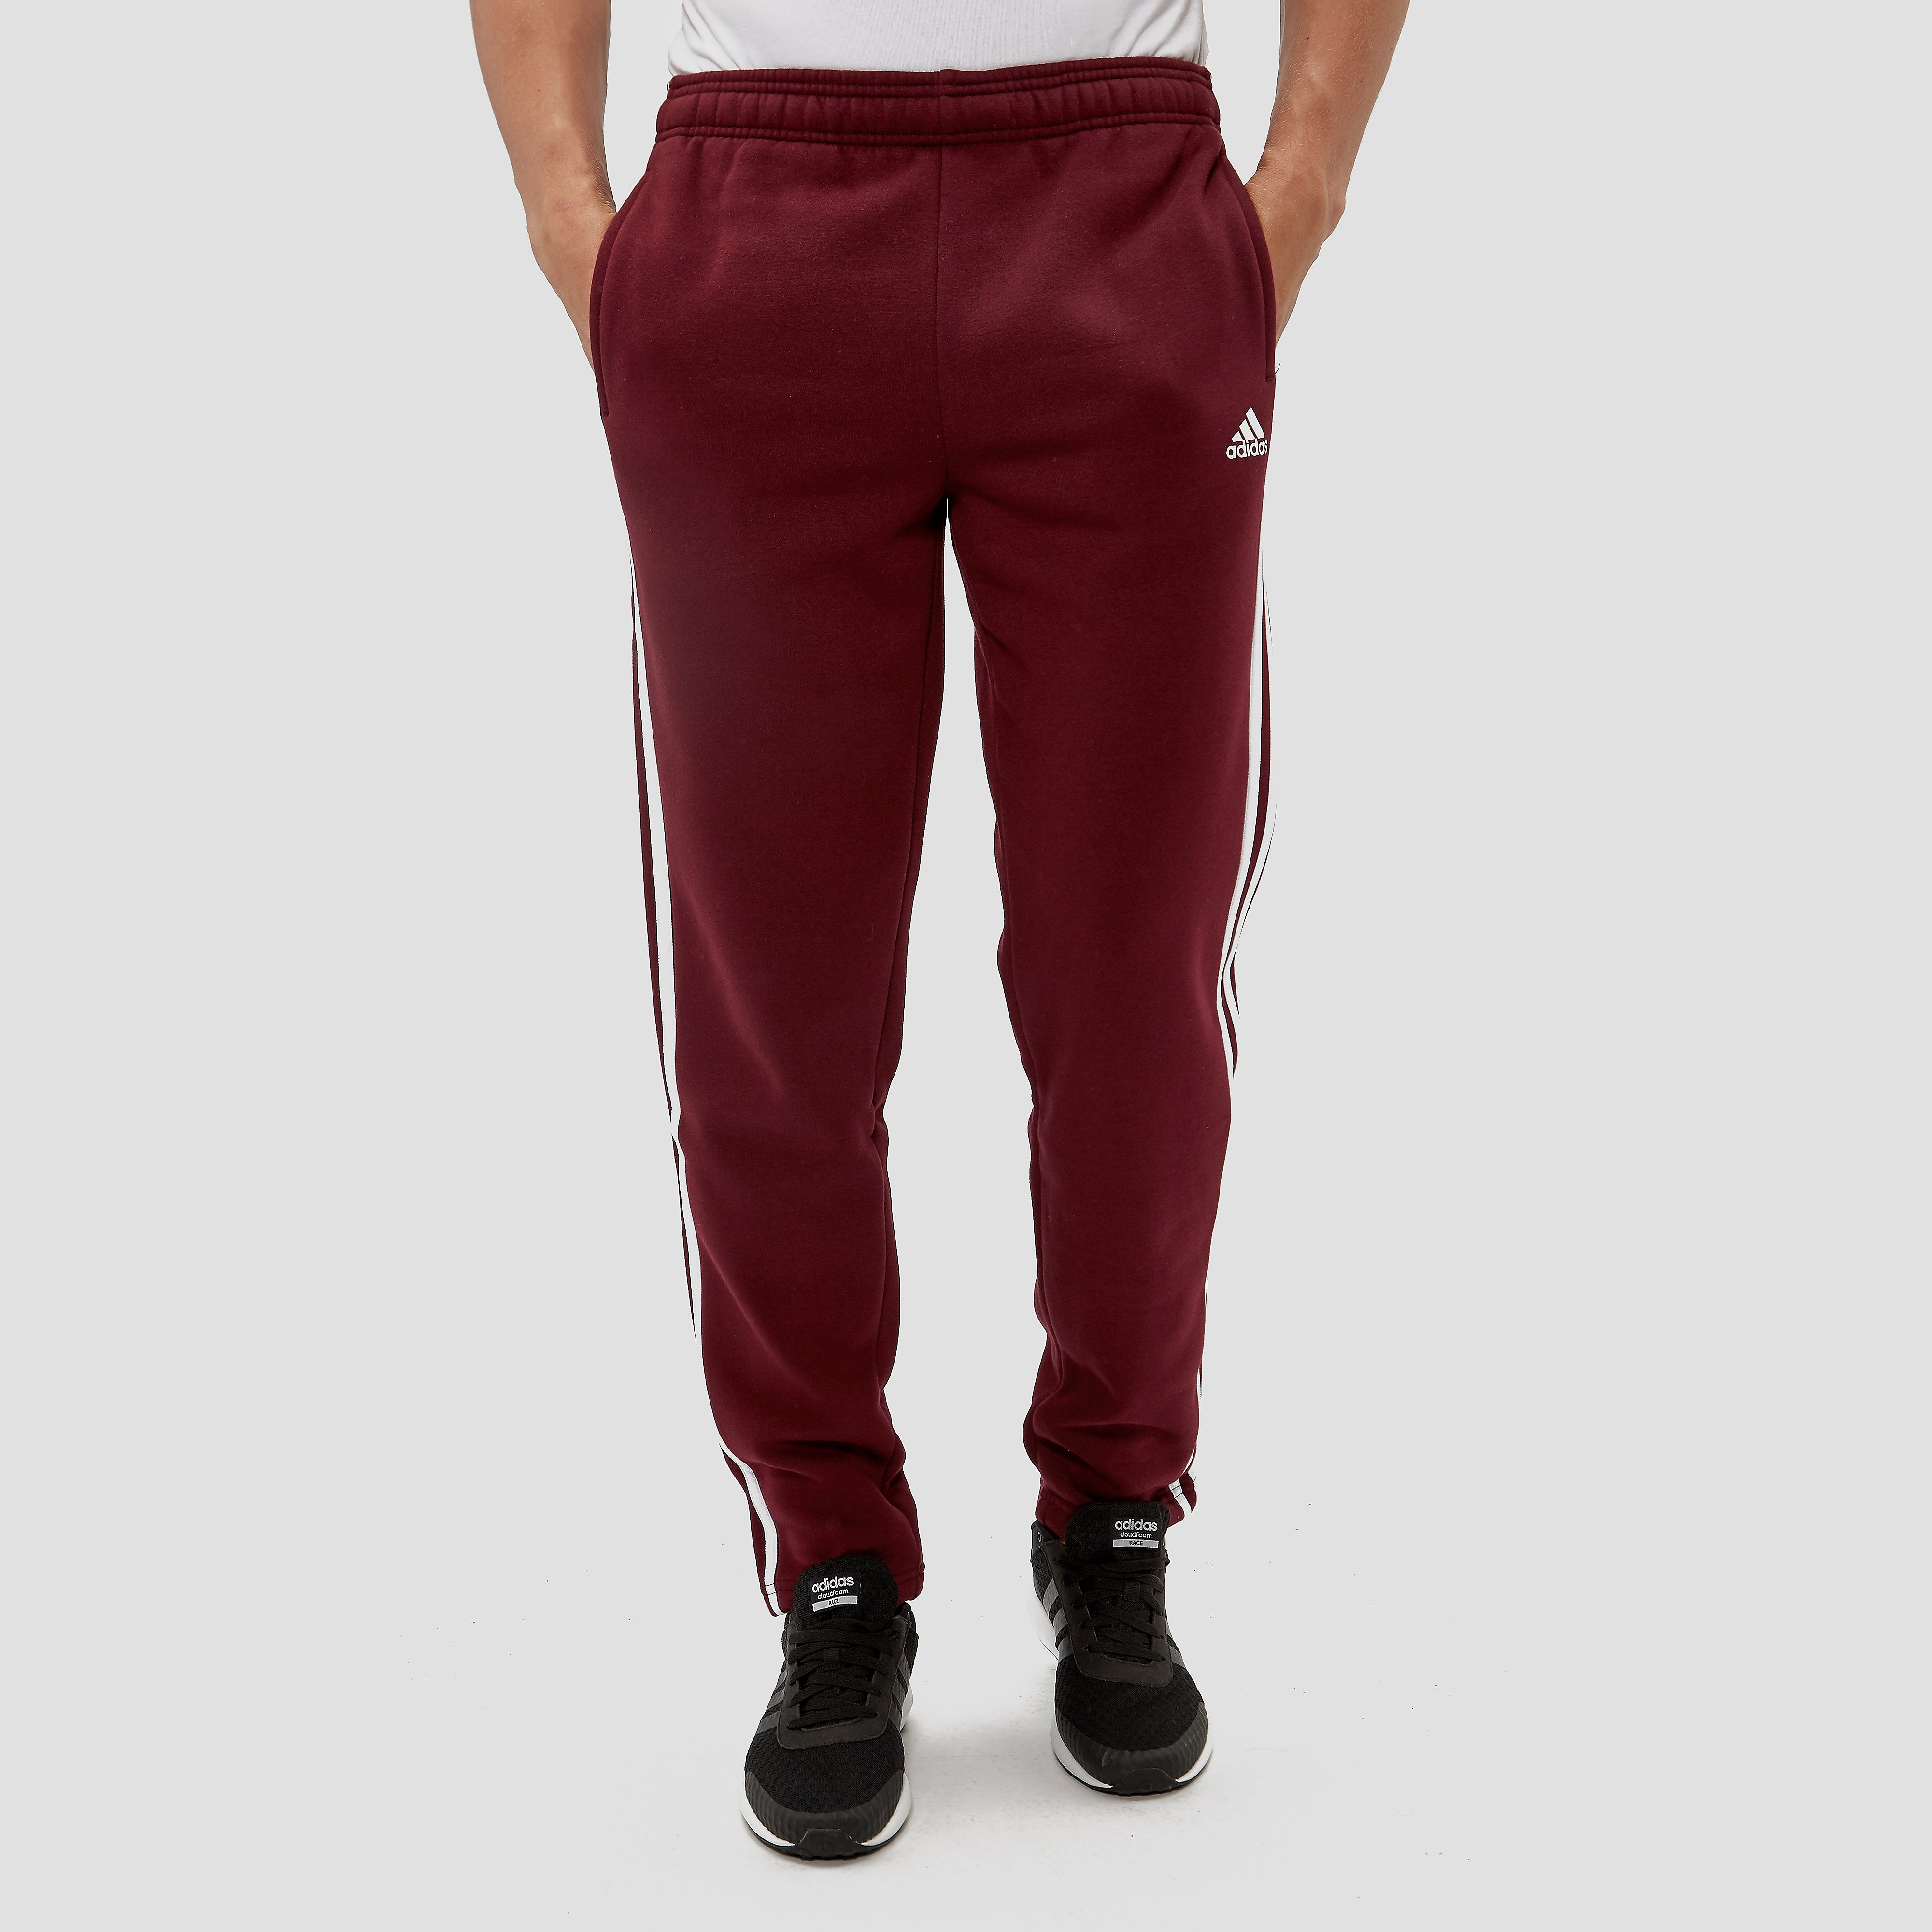 ADIDAS ESSENTIALS 3-STRIPES JOGGINGBROEK ROOD HEREN